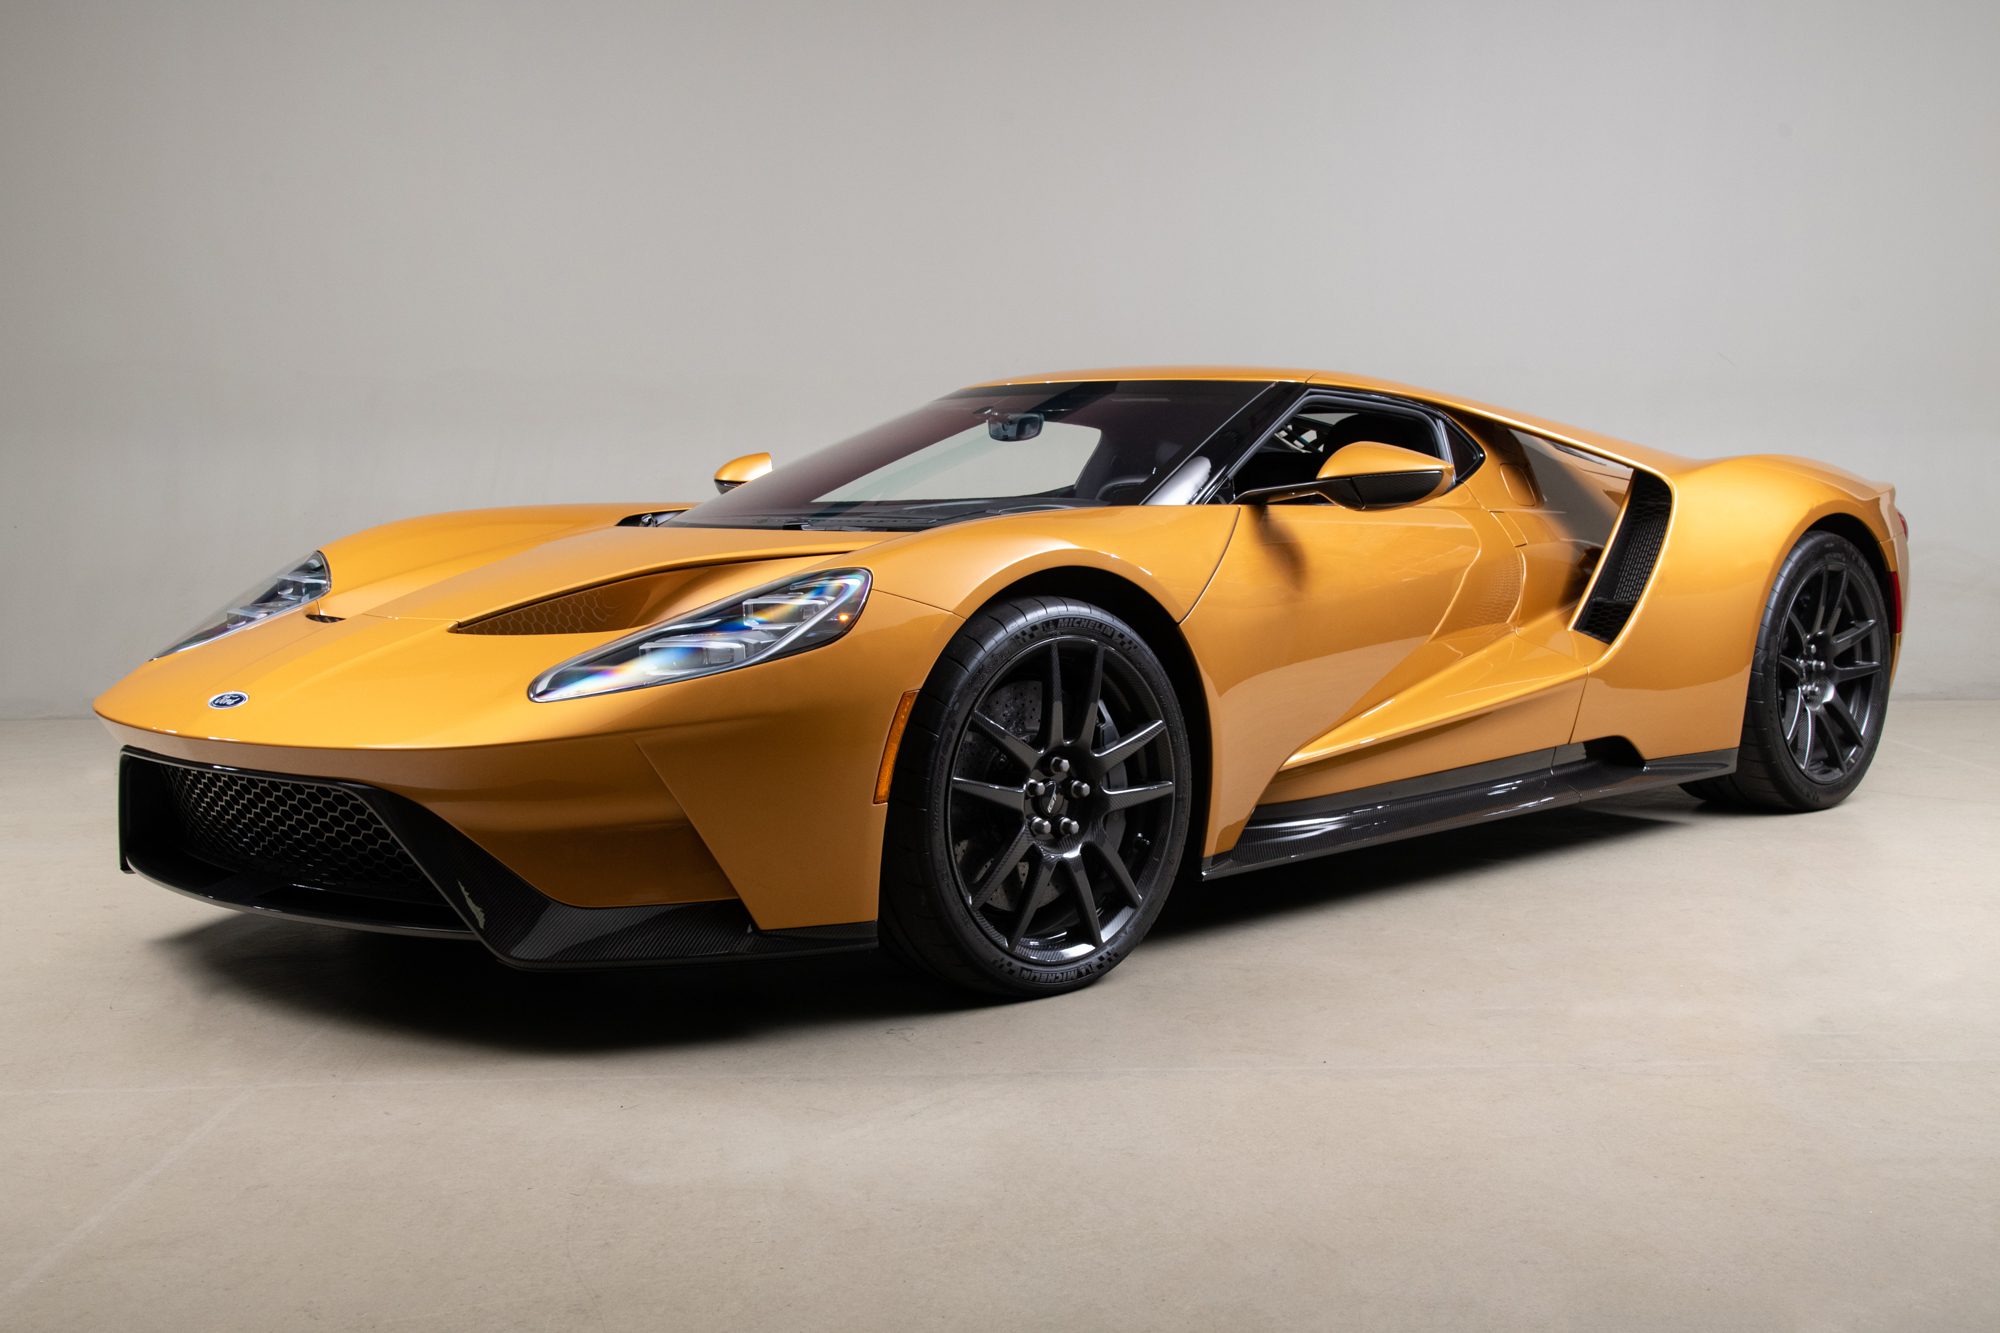 2019 Ford GT _6397